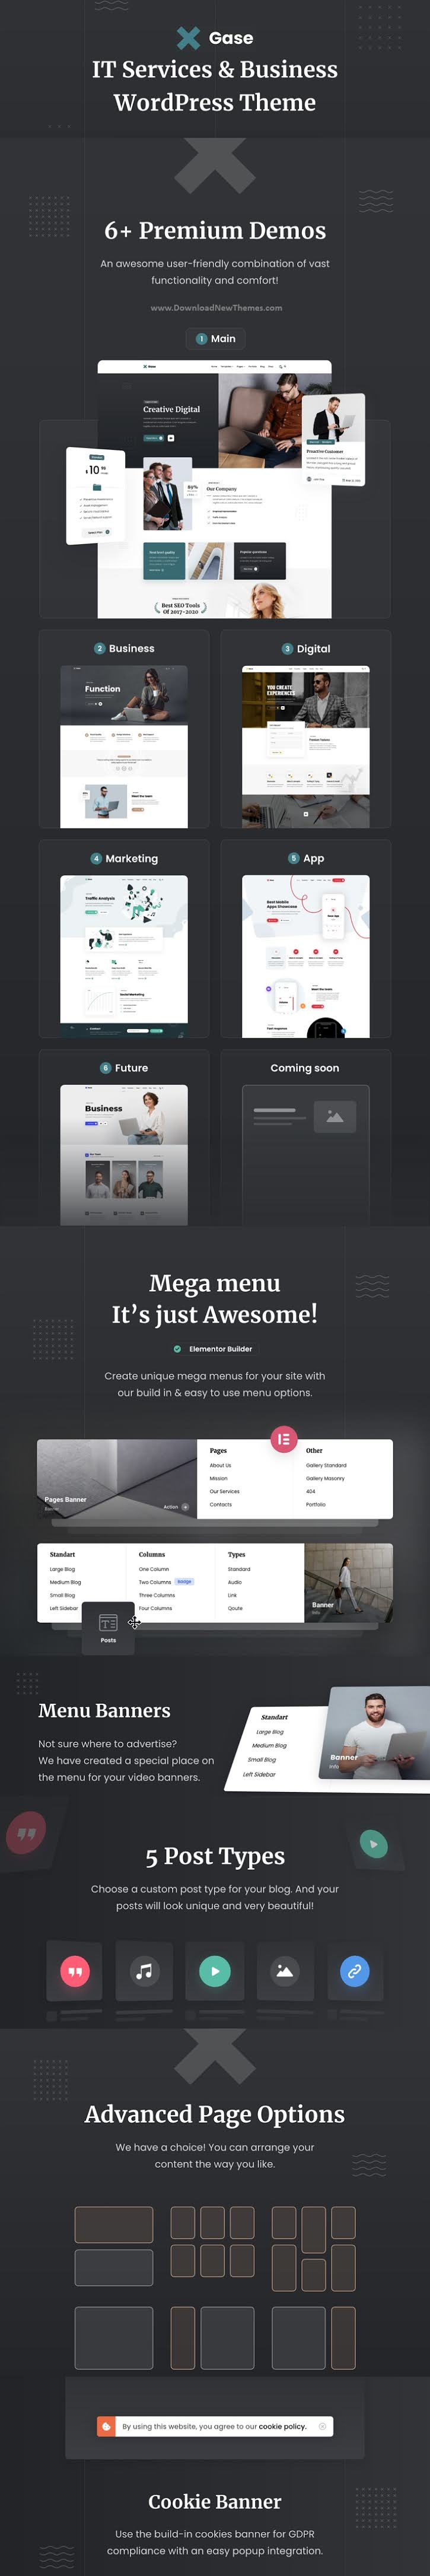 IT Services and Business WordPress Theme